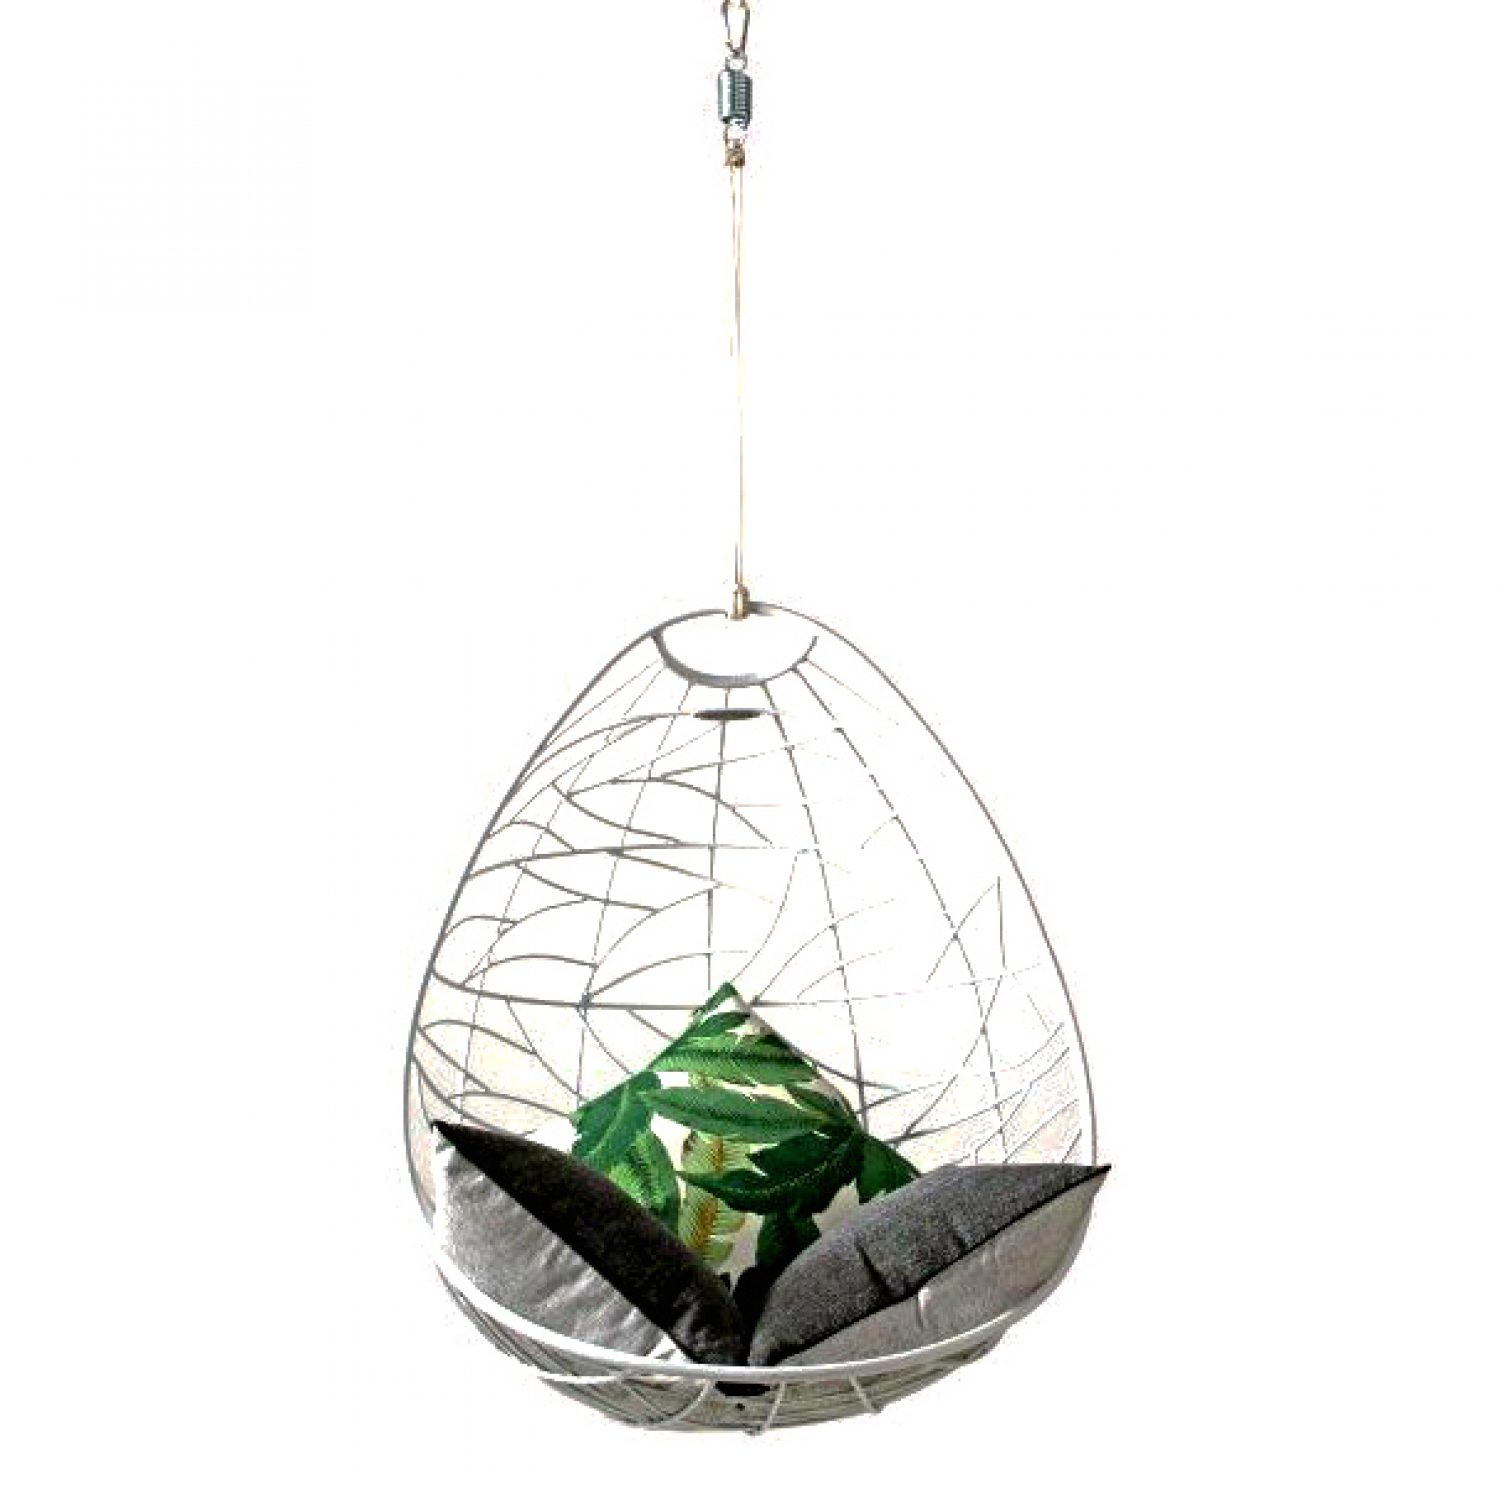 Nestegg Hanging Chair